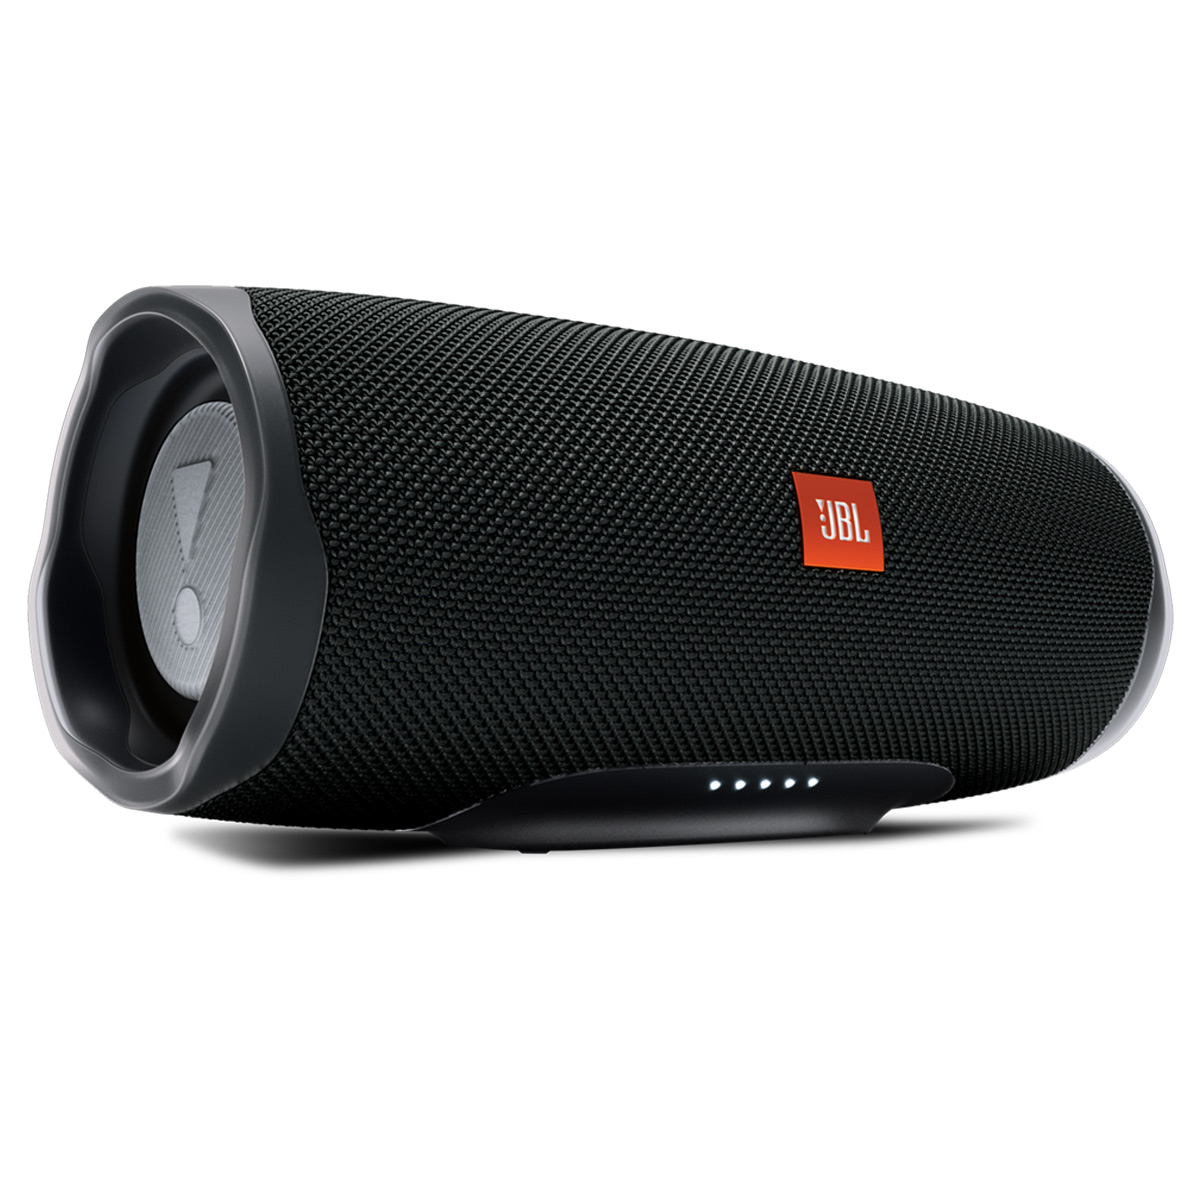 Refurb JBL Charge 4 Portable Waterproof Wireless Bluetooth Speaker